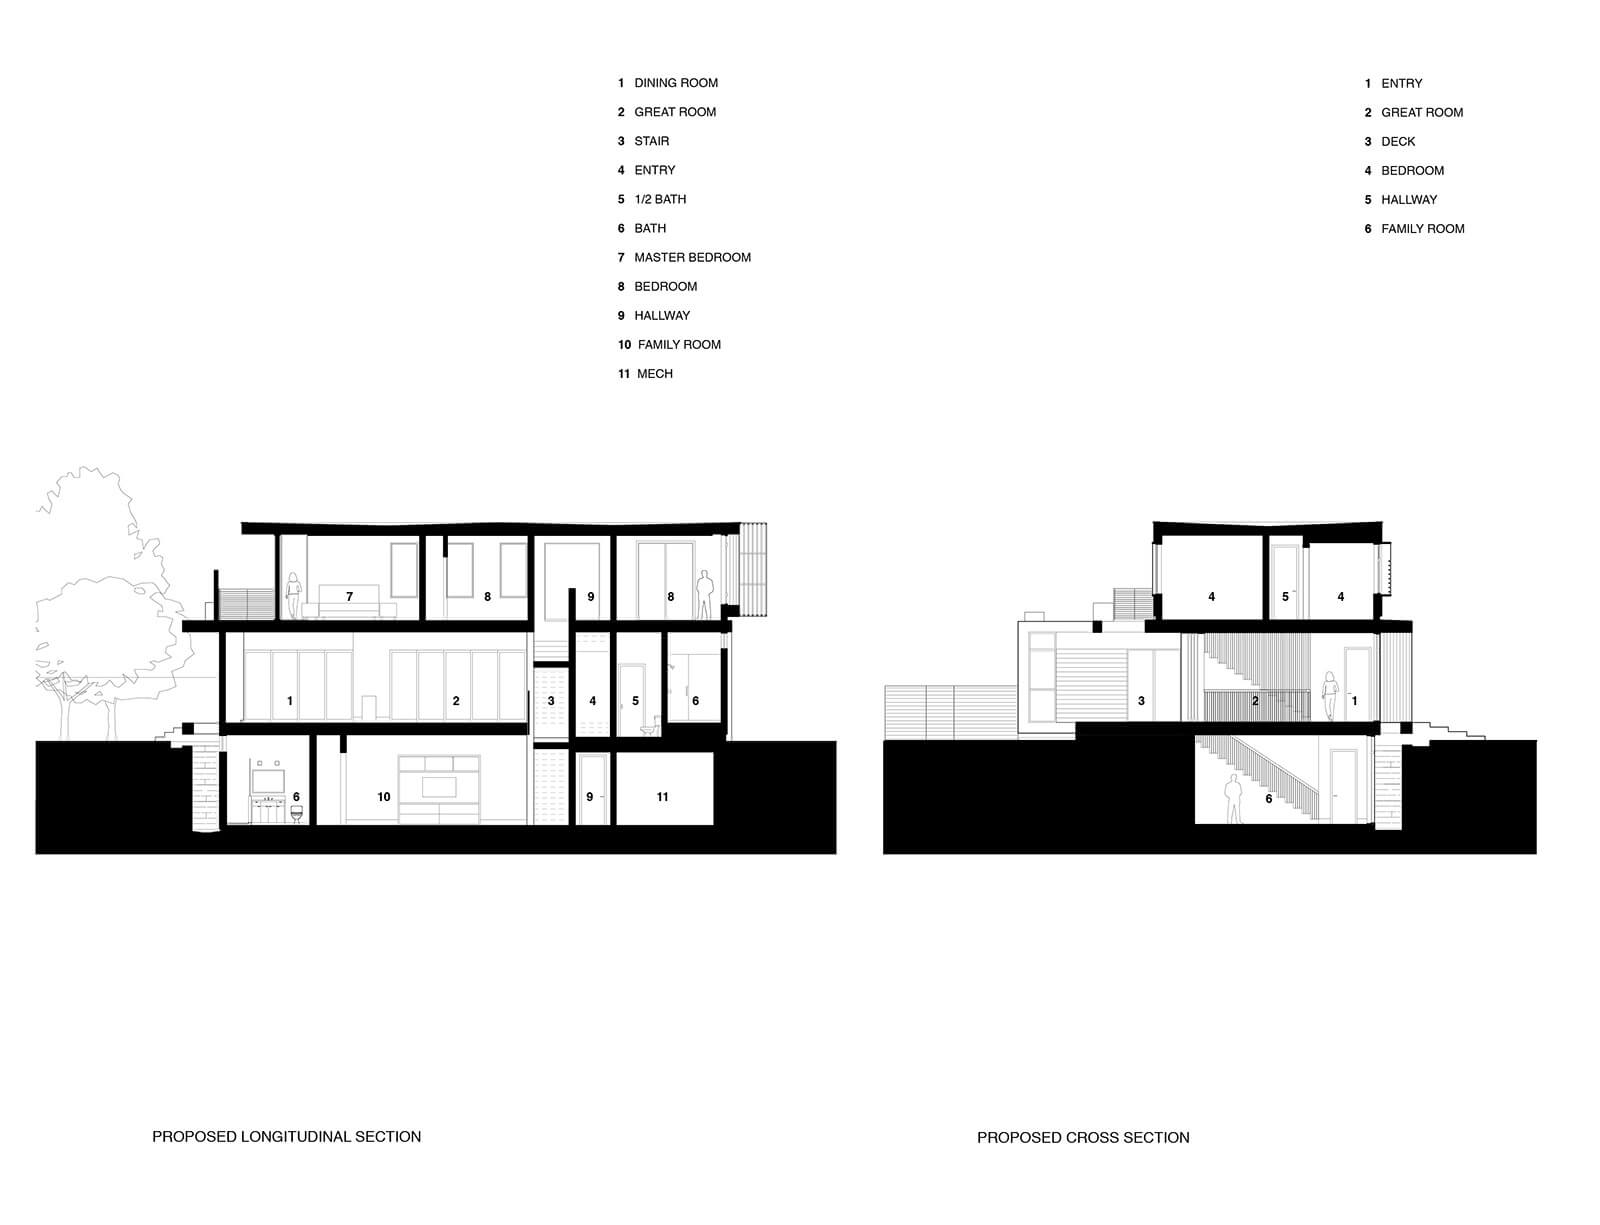 studio vara residential palo alto drawing section